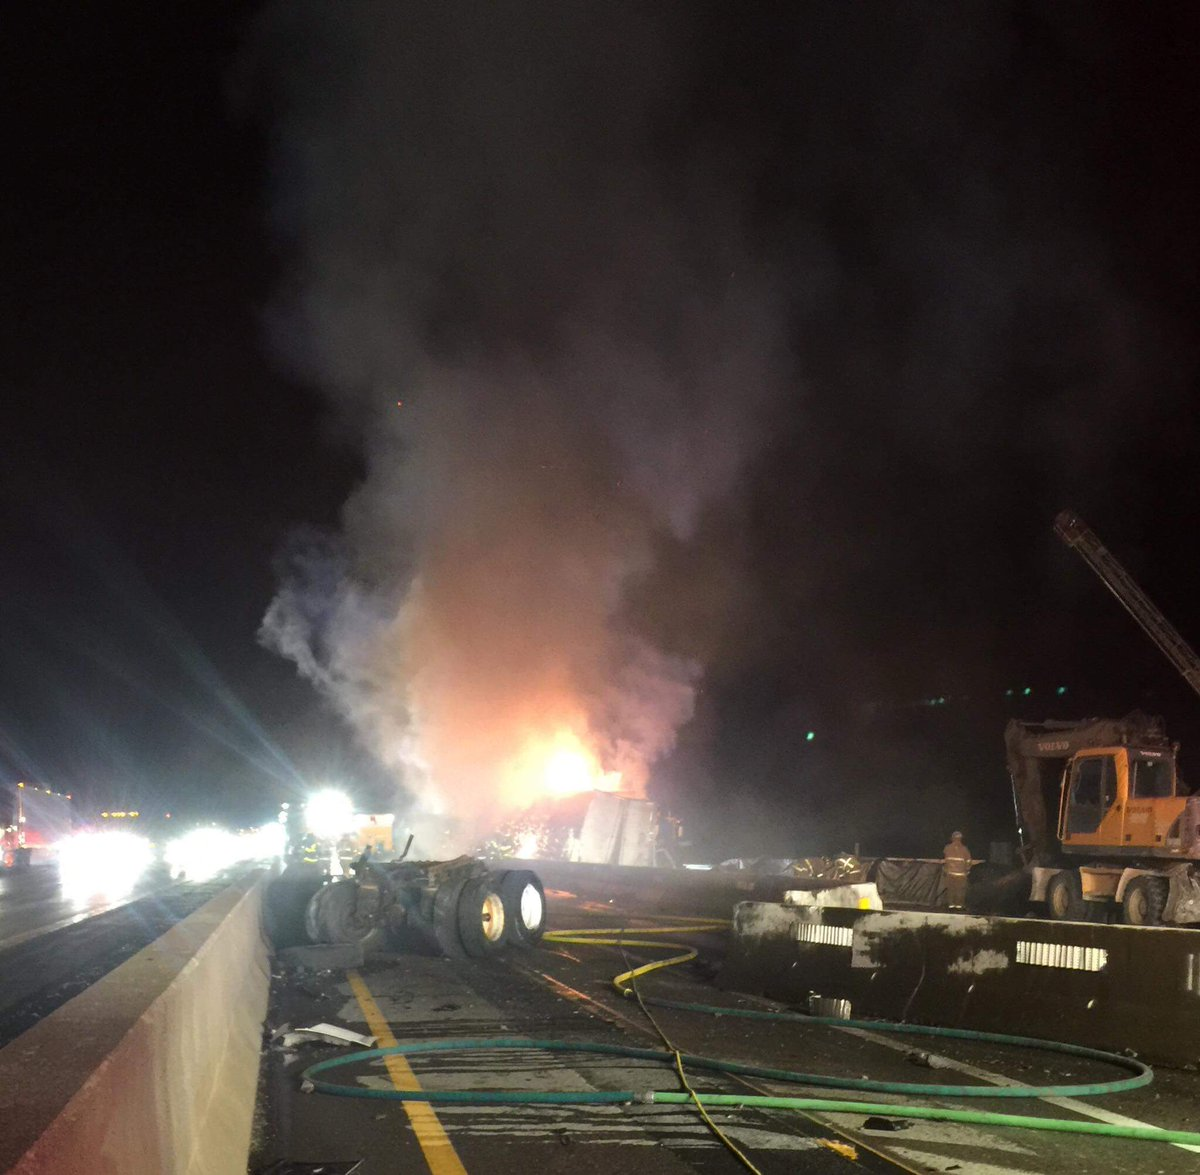 Tractor-trailer crash, blaze closes Thruway for hours late